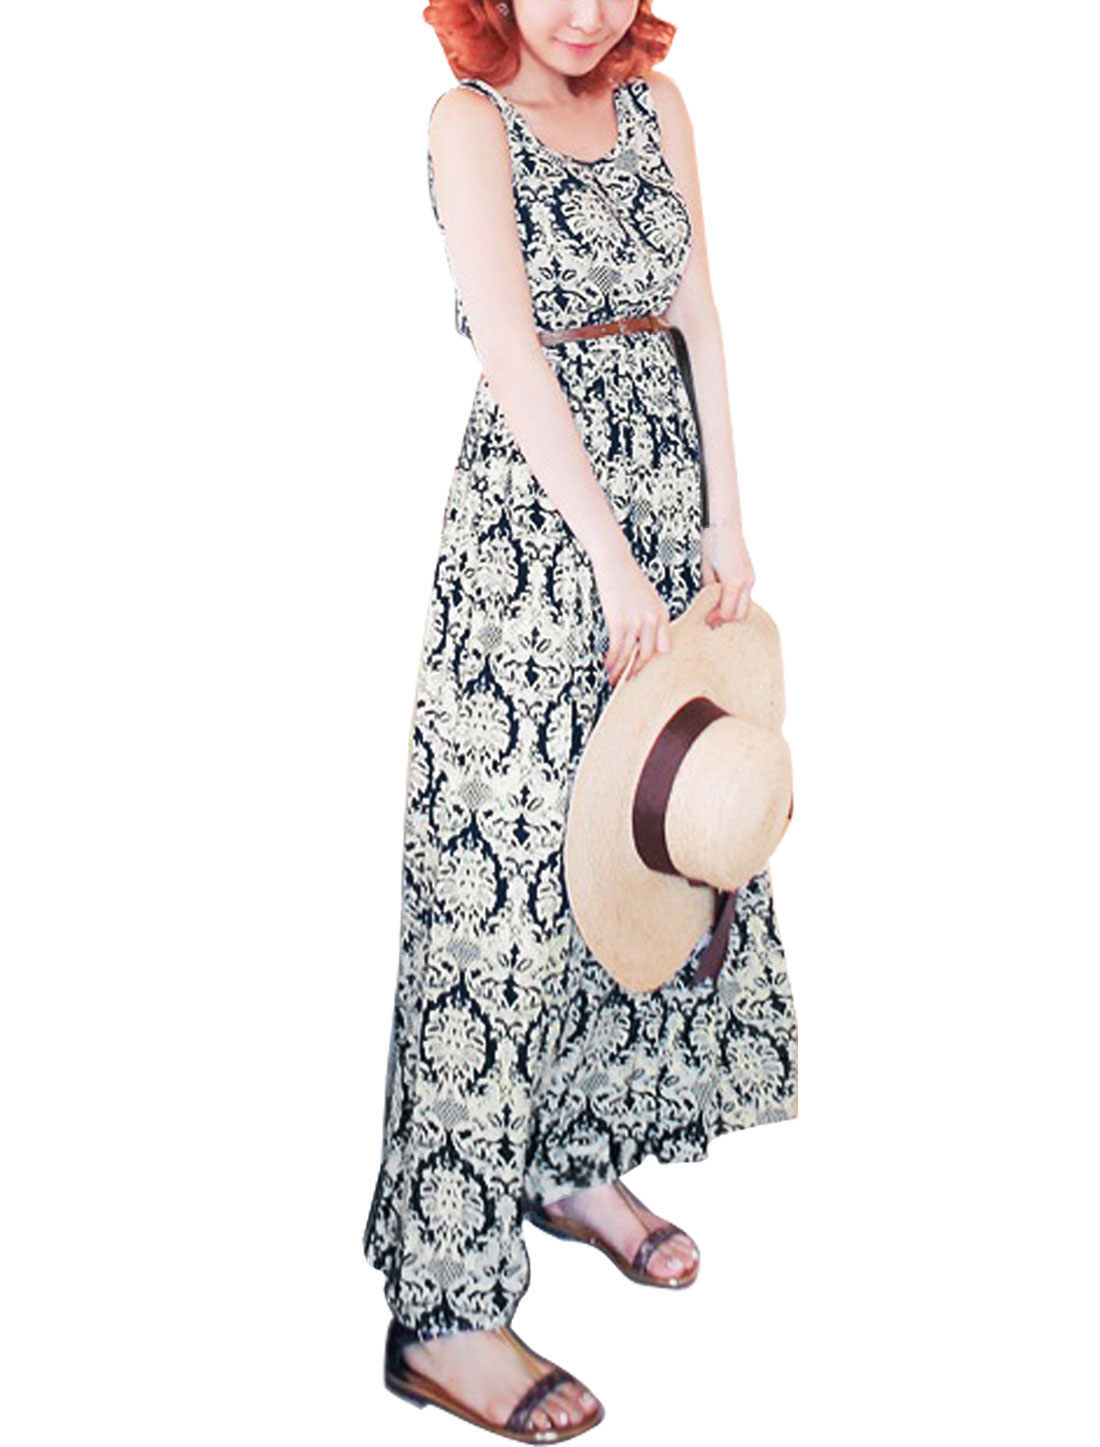 Women Scoop Neck Sleeveless Floral Print Unlined Maxi Dress Navy Blue Beige S